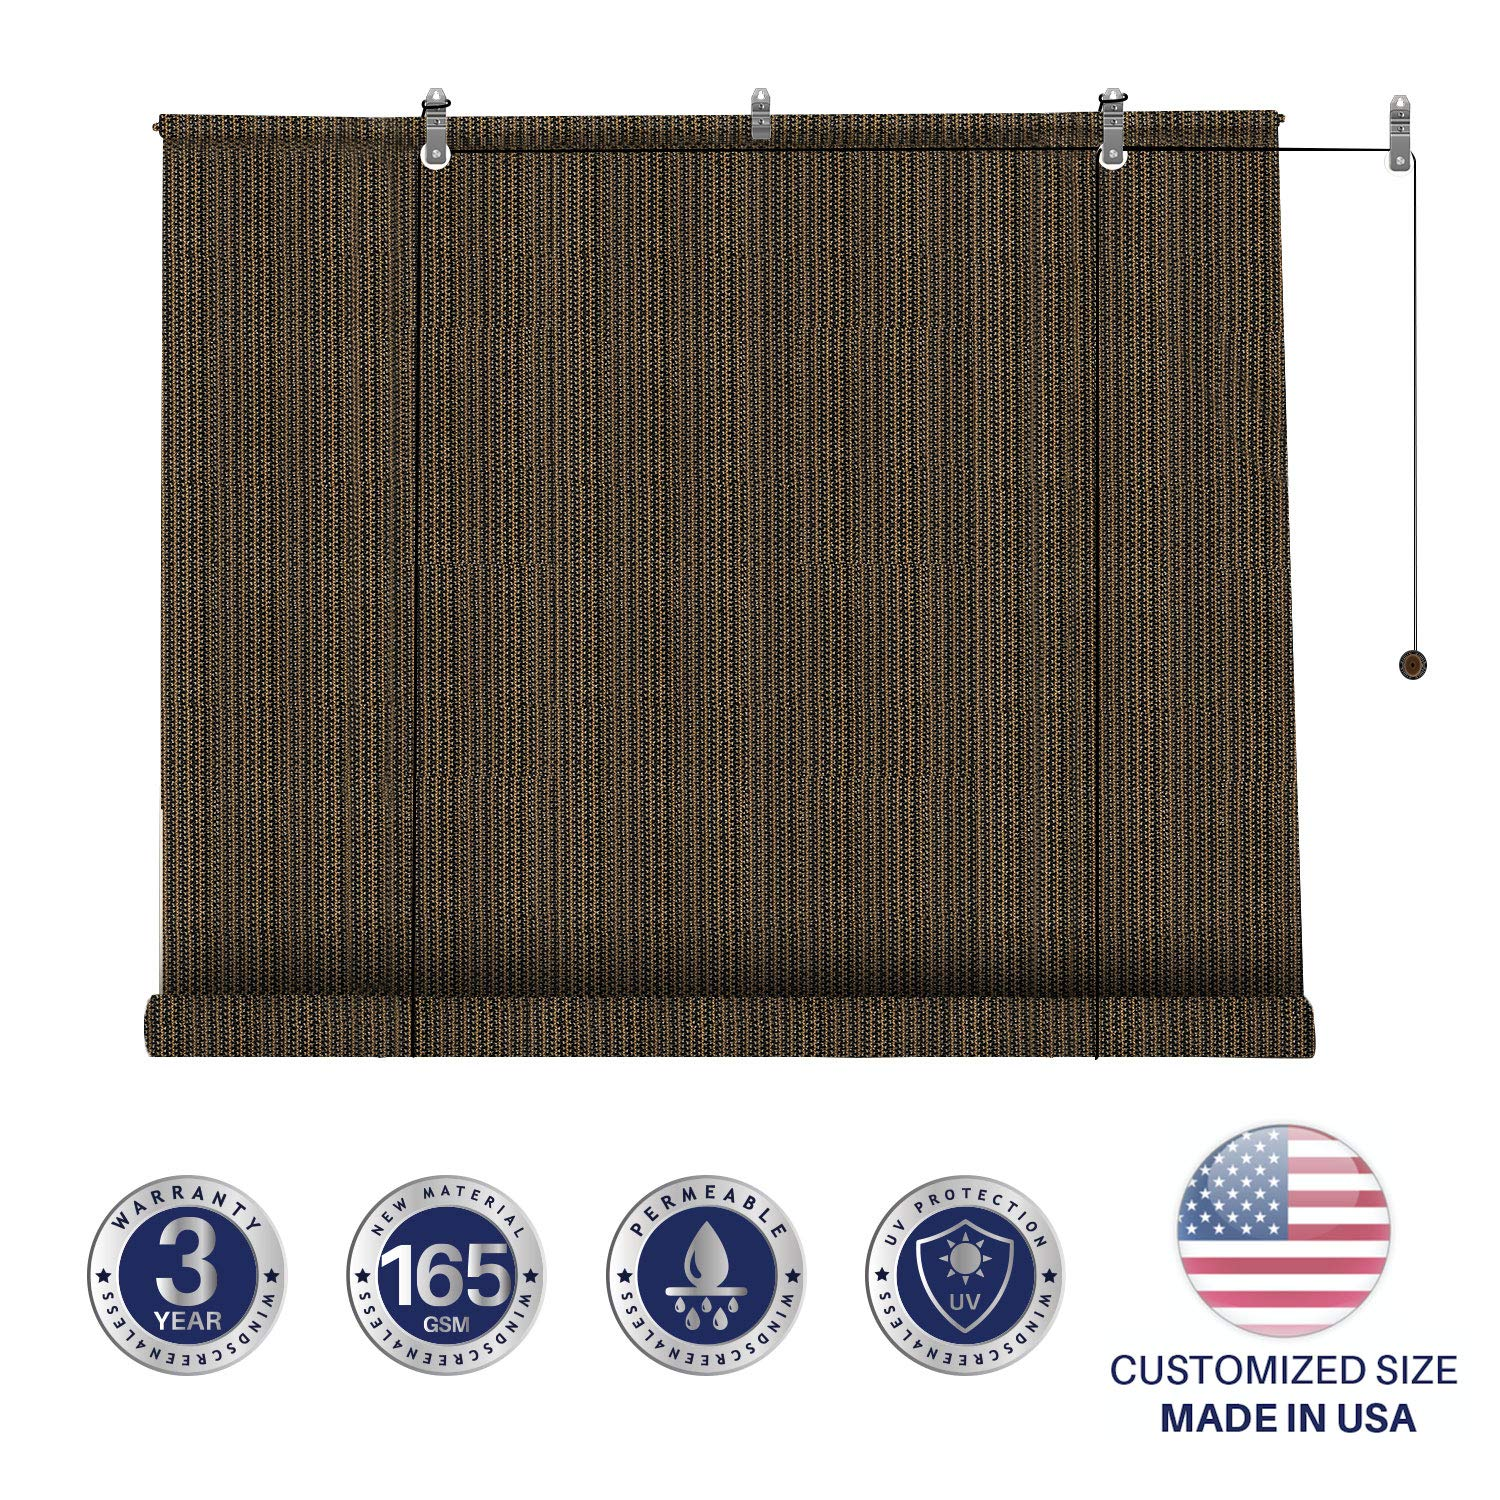 Windscreen4less Exterior Roller Shade Blinds Outdoor Roll Up Shade with 90% UV Protection Privacy for Deck Back Yard Gazebo Pergola Balcony Patio Porch Carport 7' W x 6' L Brown by Windscreen4less